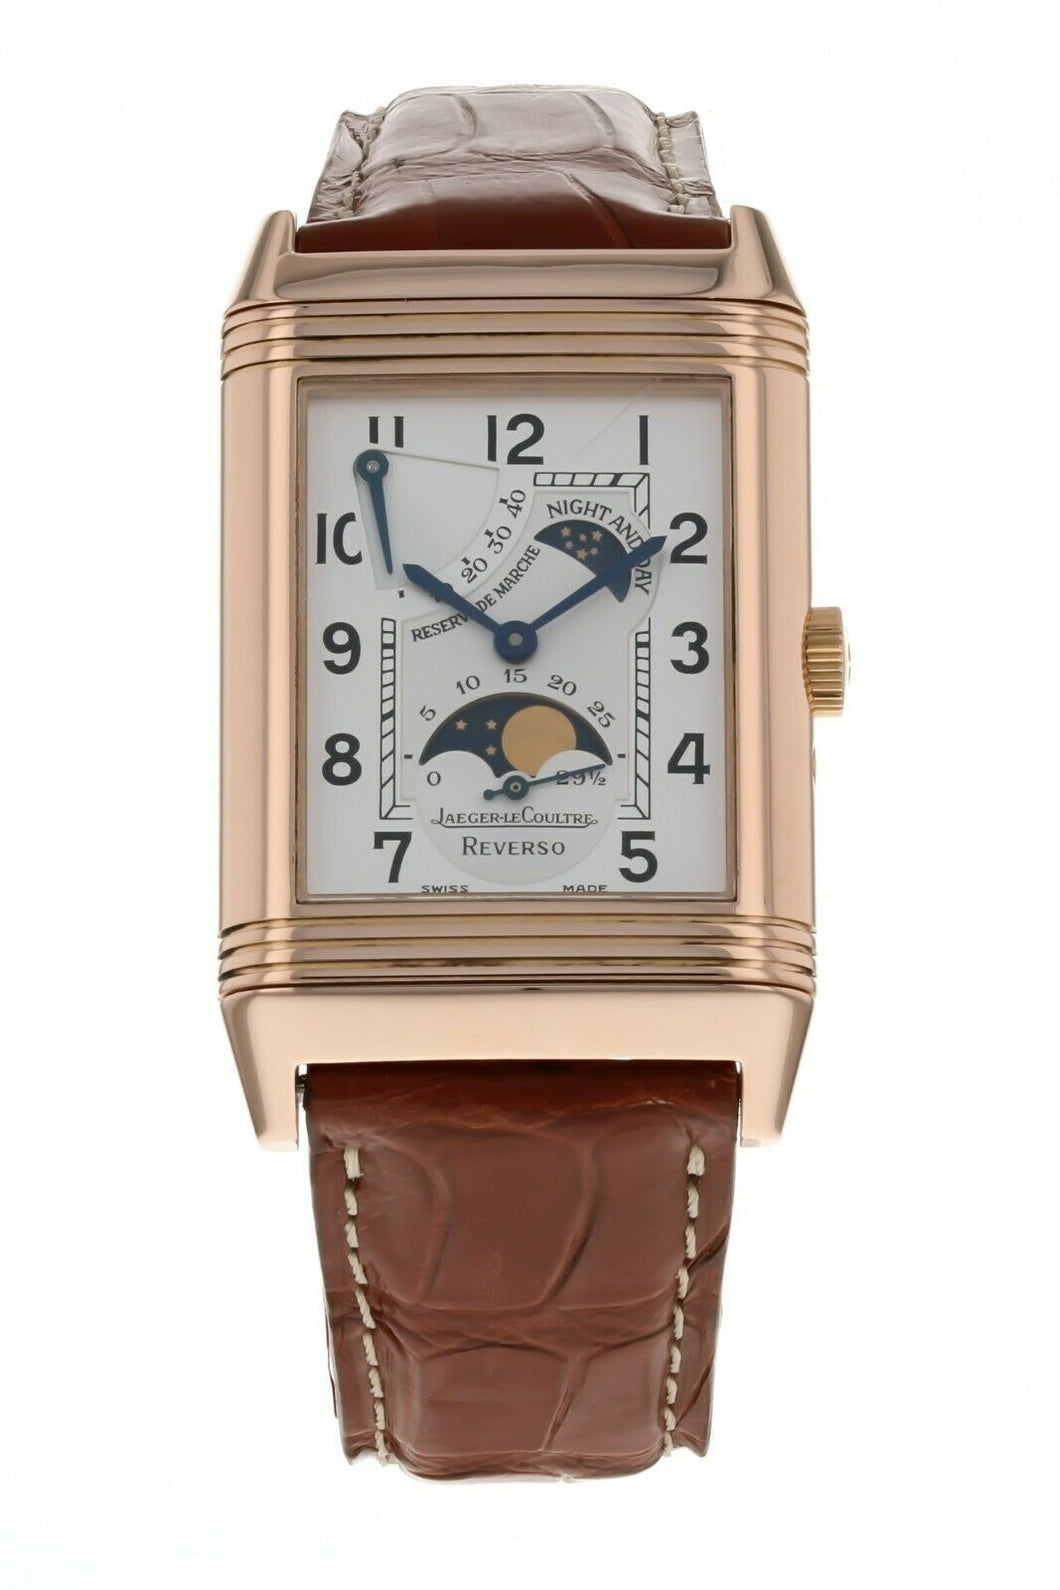 Jaeger-LeCoultre Reverso Sun Moon 18k Rose Gold Men's 26mm x 42mm Watch 270.2.63